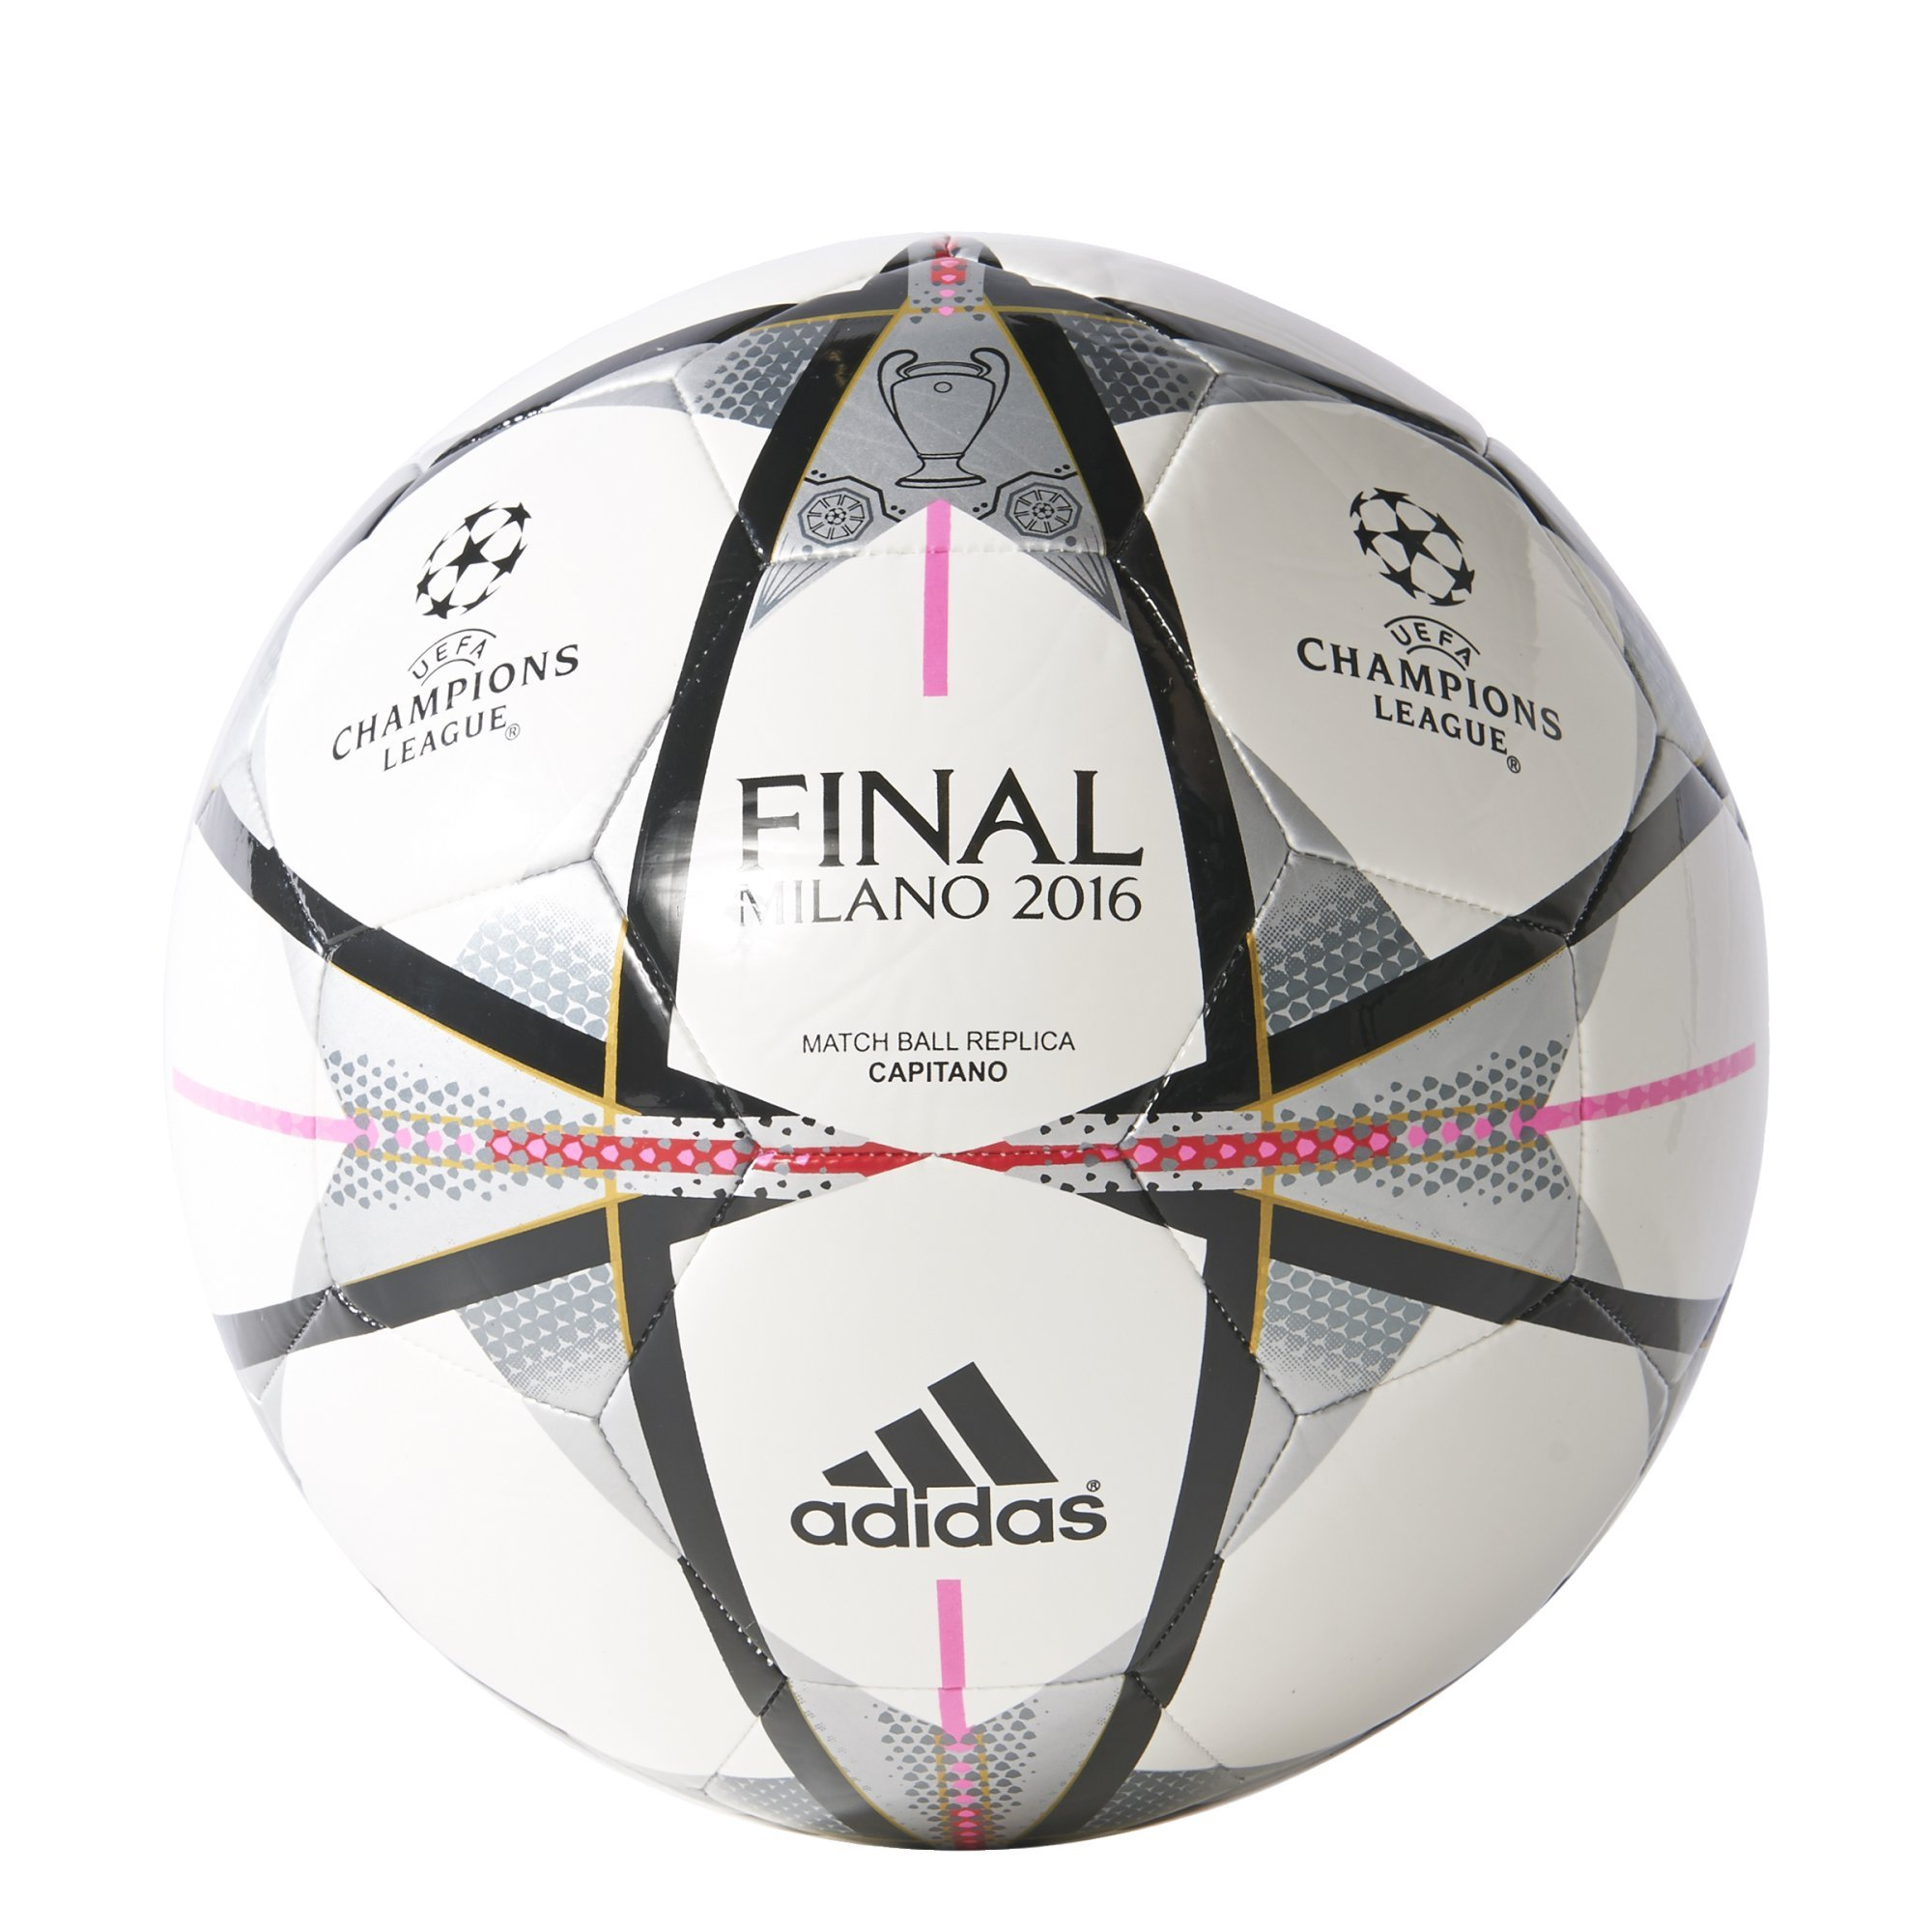 adidas Performance Champions League Finale Milano Capitano Soccer Ball, White/Black/Silver Metallic, Size 3